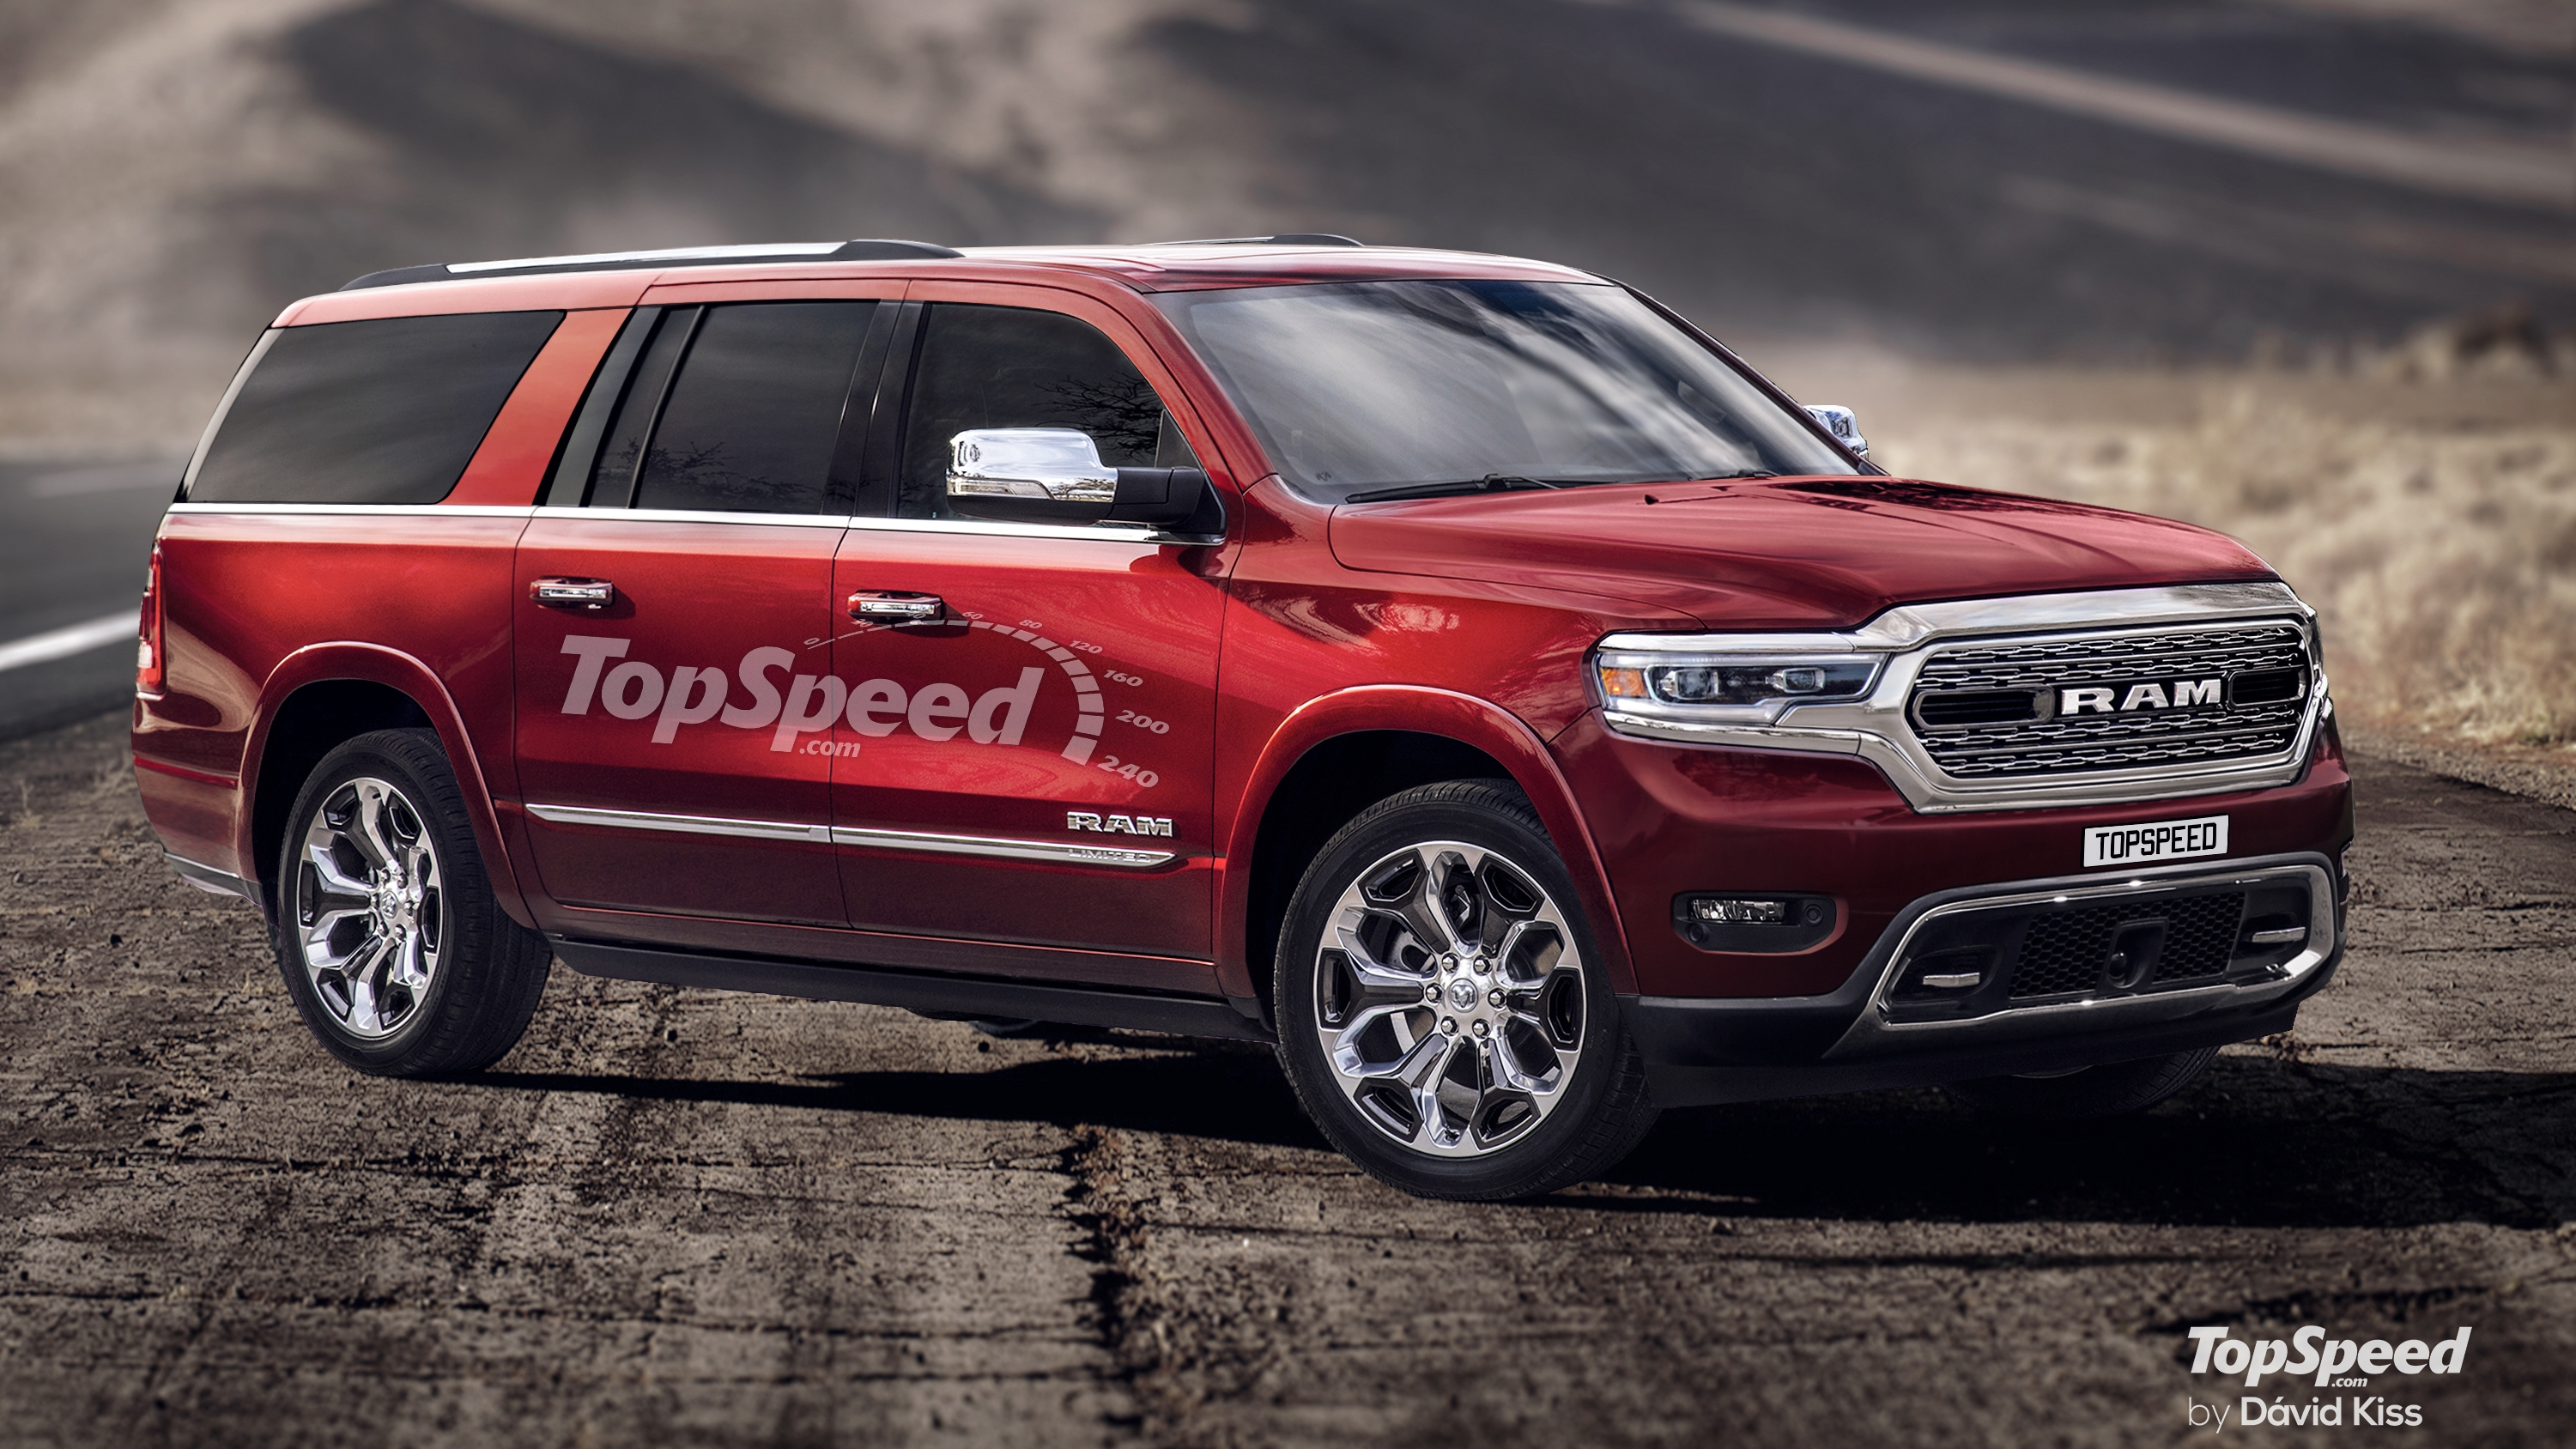 2020 RAM Ramcharger | Top Speed